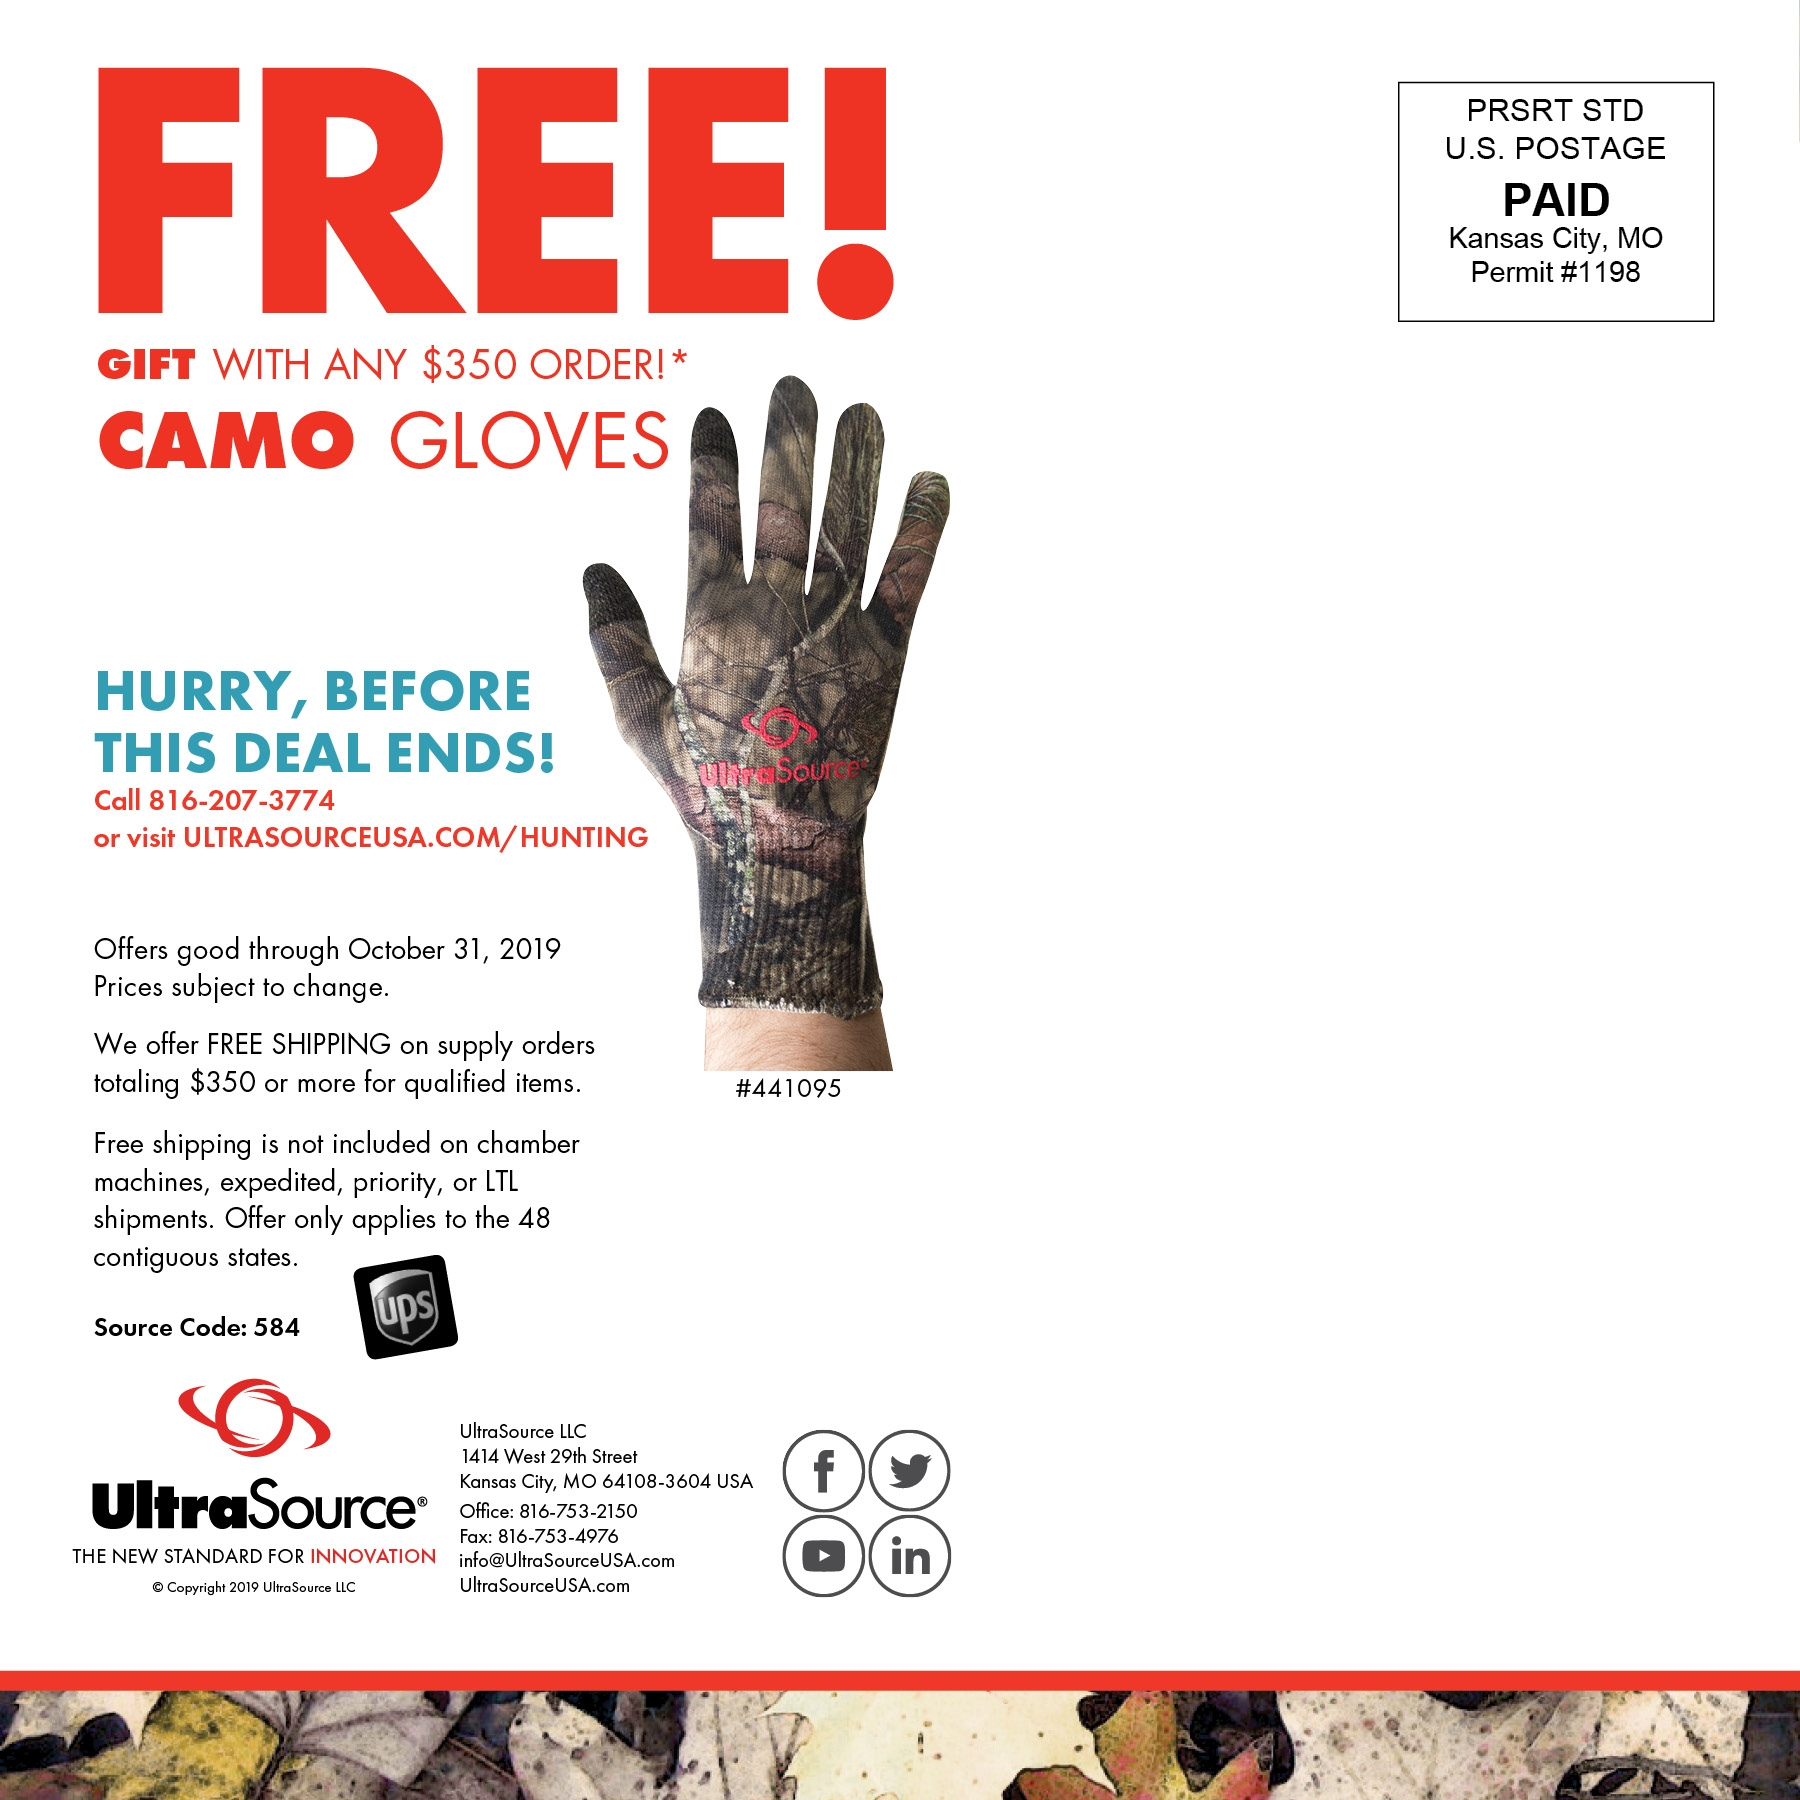 Free Camo Gloves with $350 Purchase